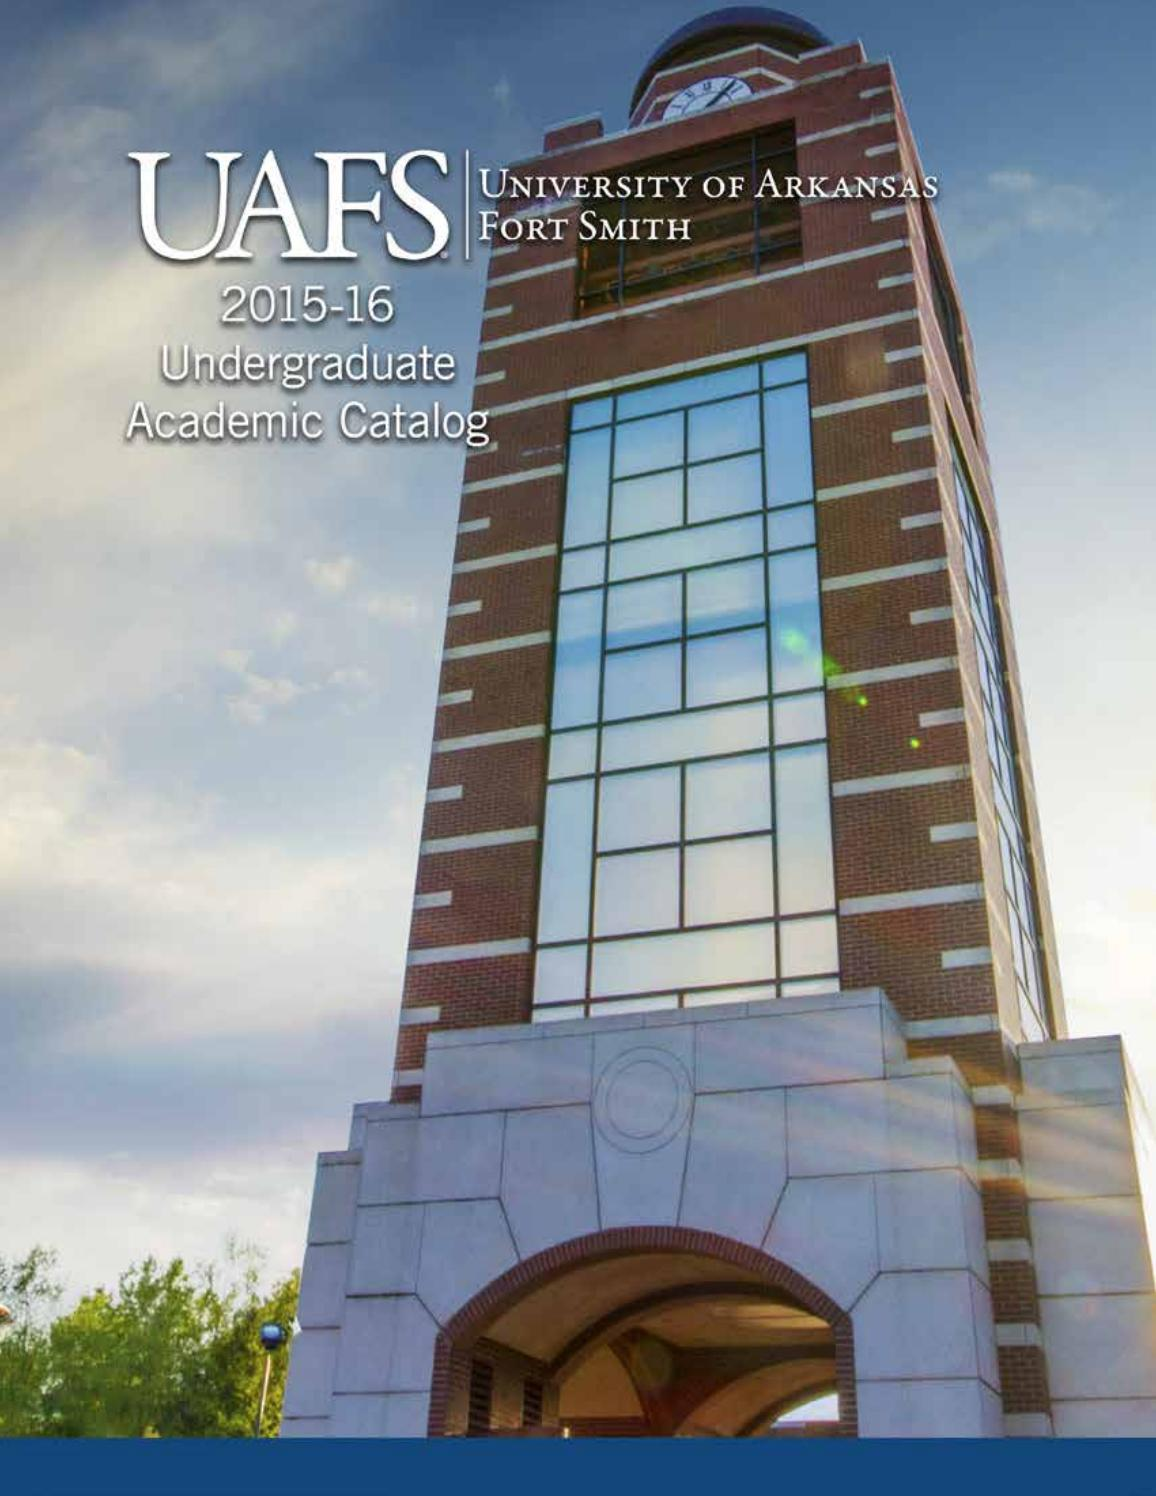 2015-16 UAFS Undergraduate Academic Catalog by University of